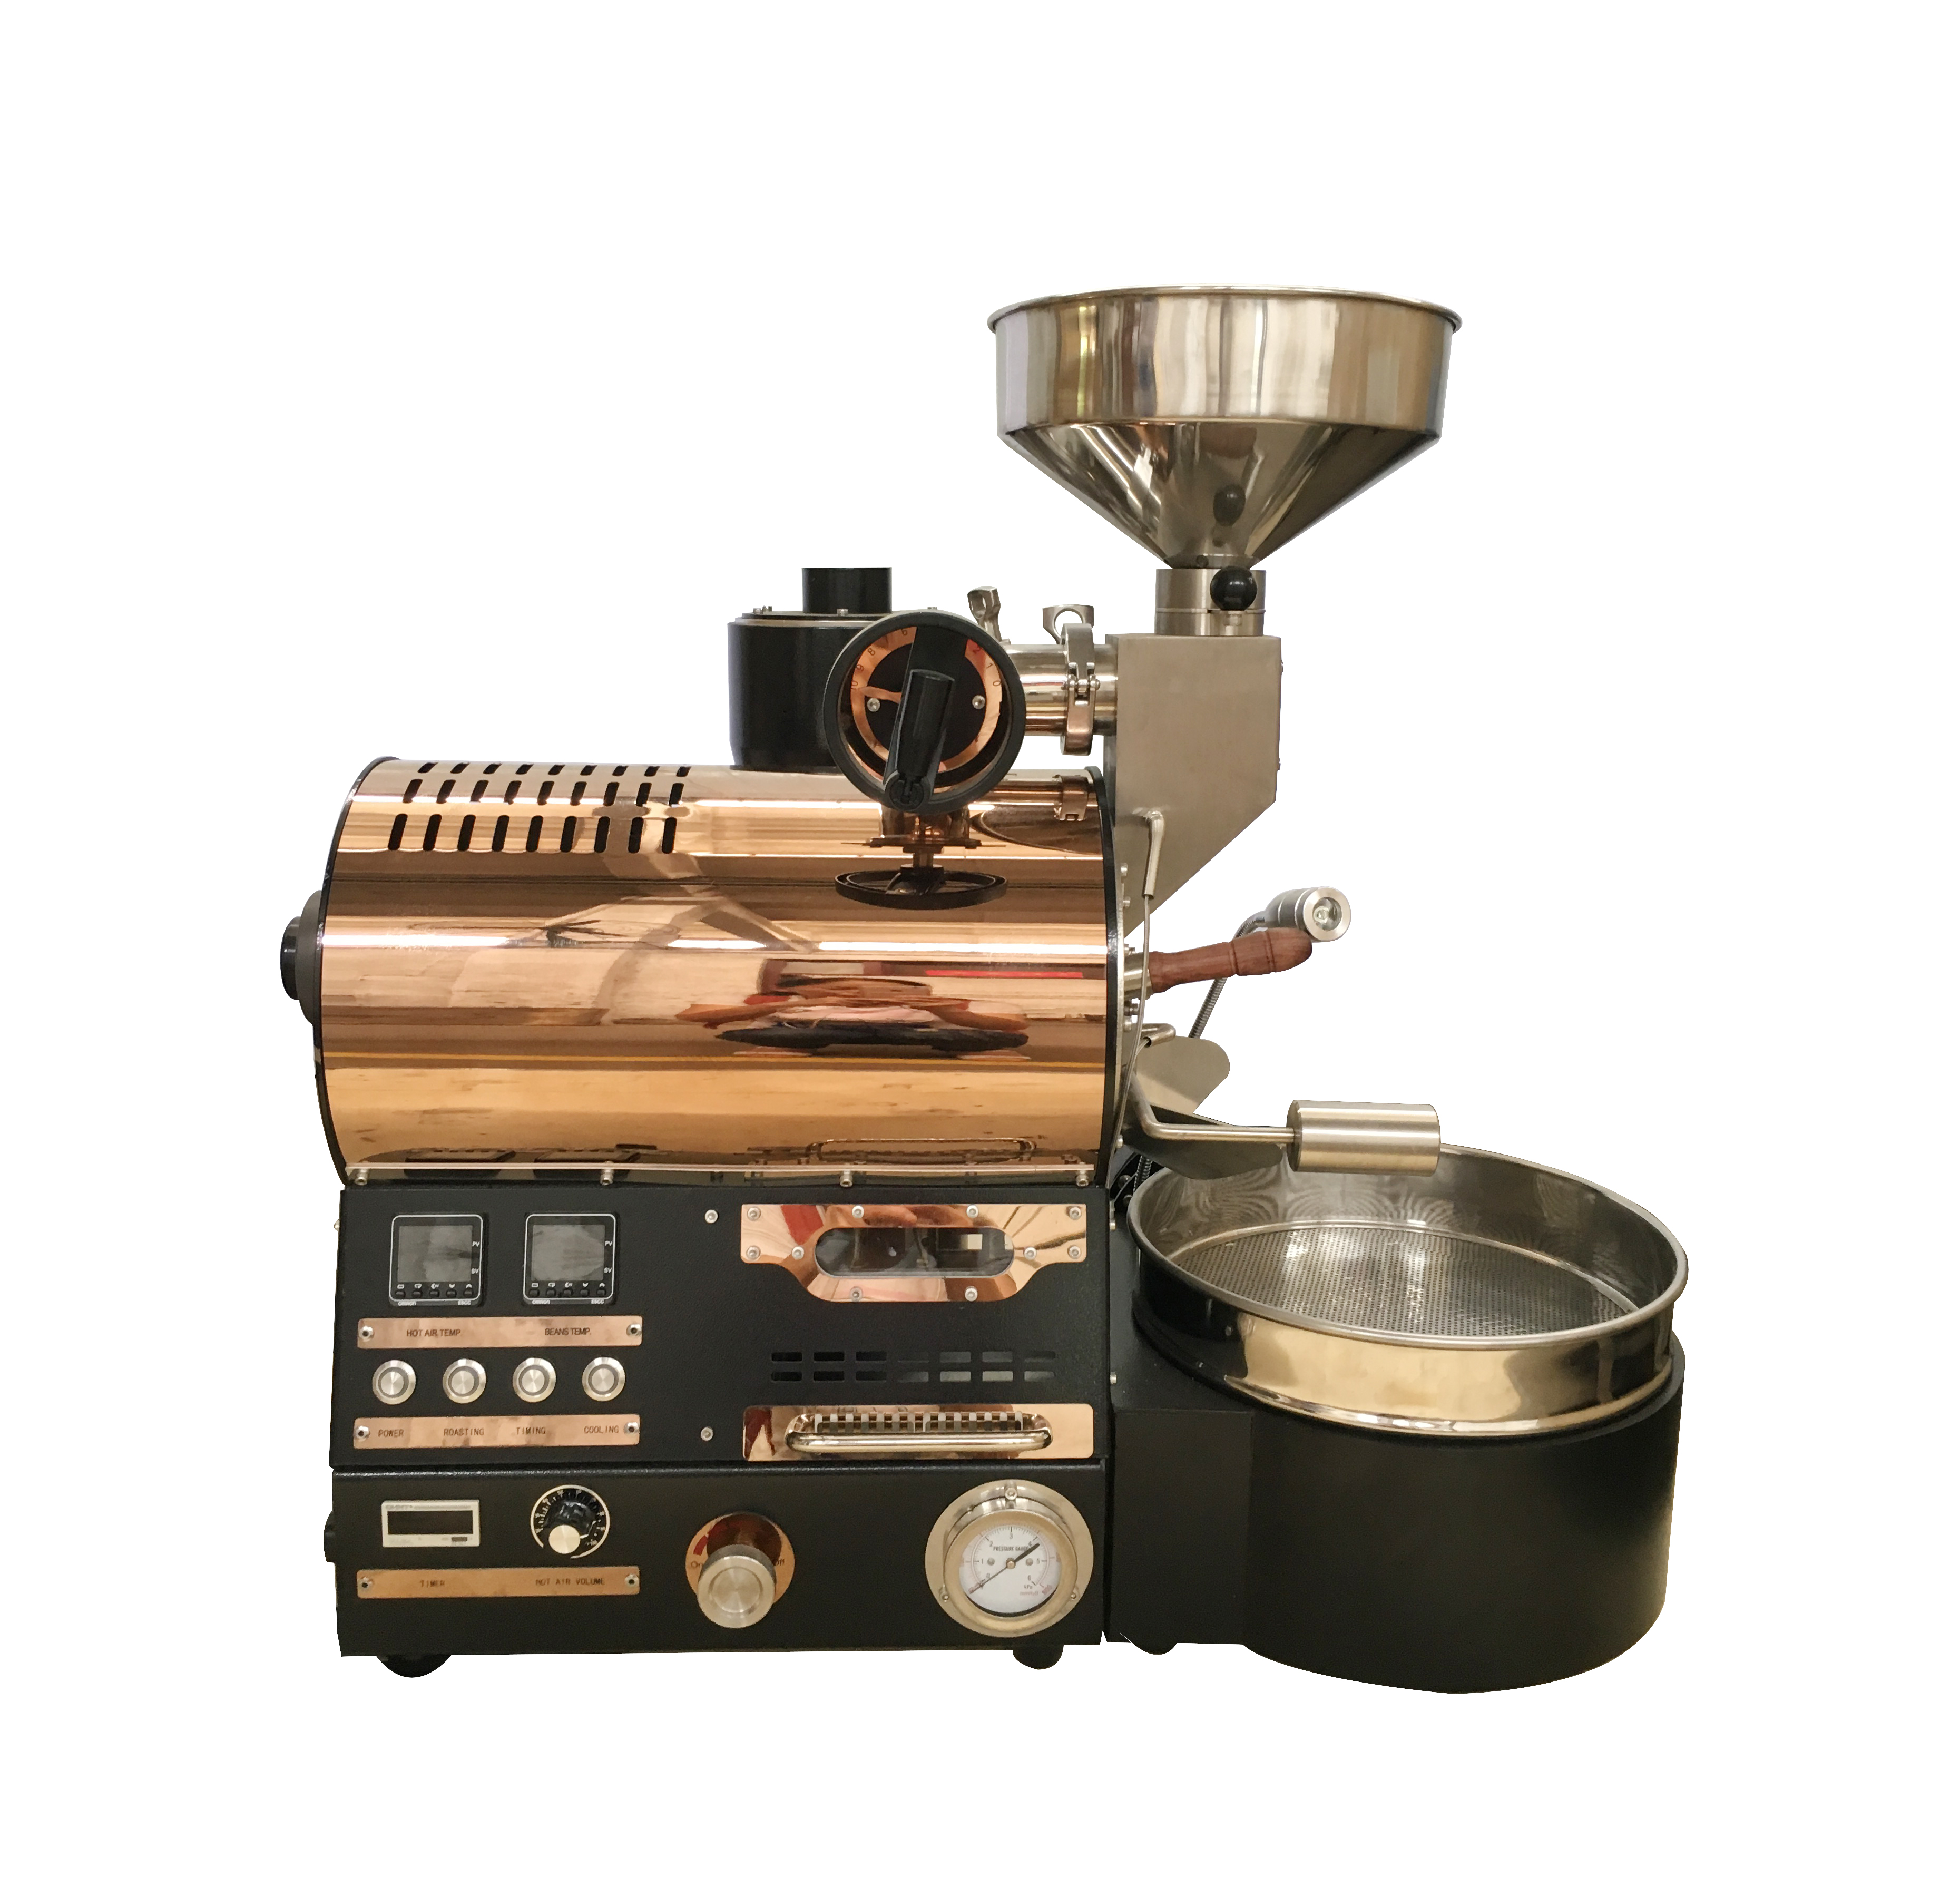 600 g coffee roaster